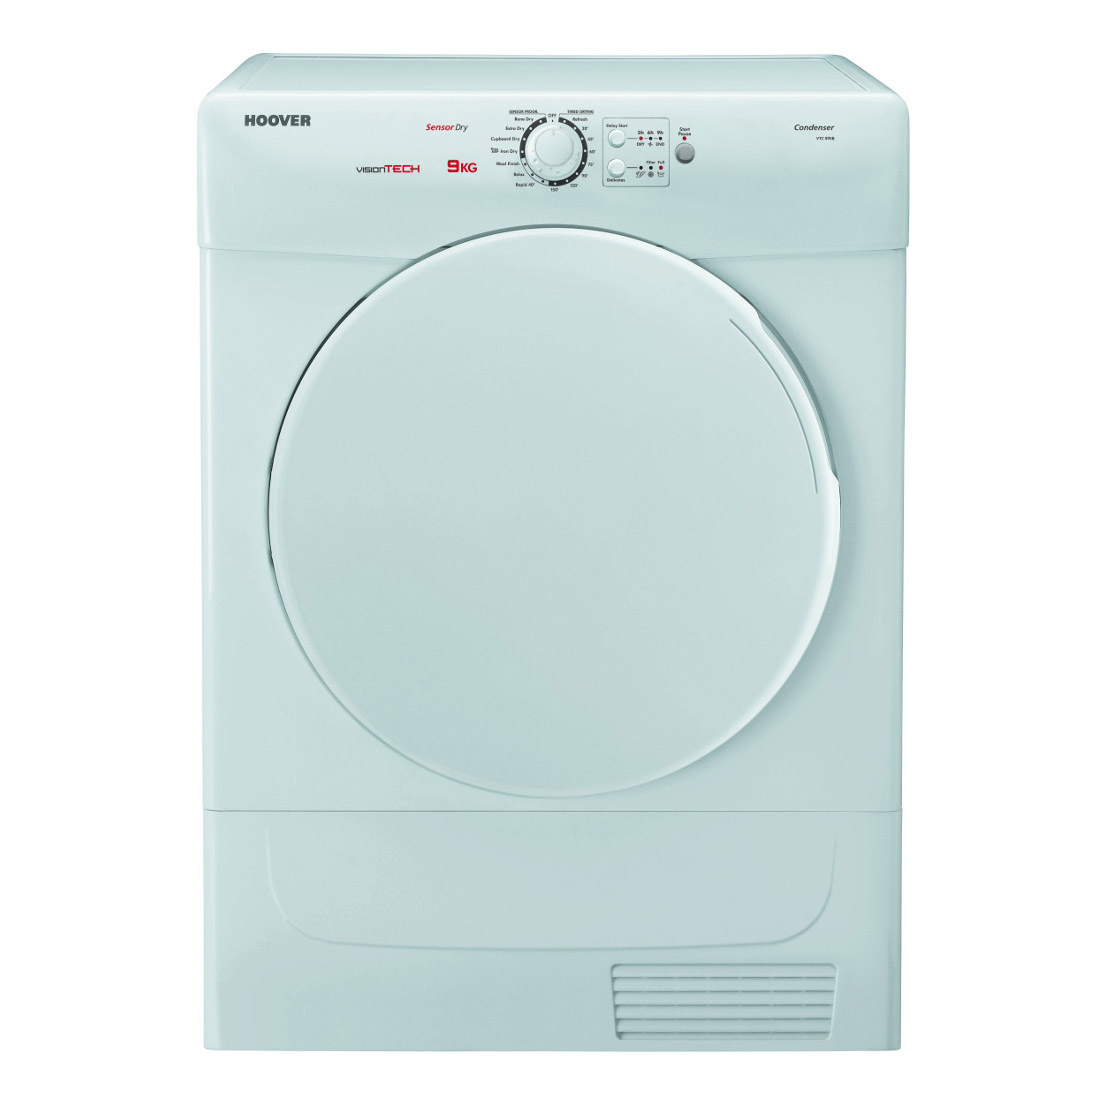 hoover vtc590b 9kg condenser tumble dryer in white sensor. Black Bedroom Furniture Sets. Home Design Ideas